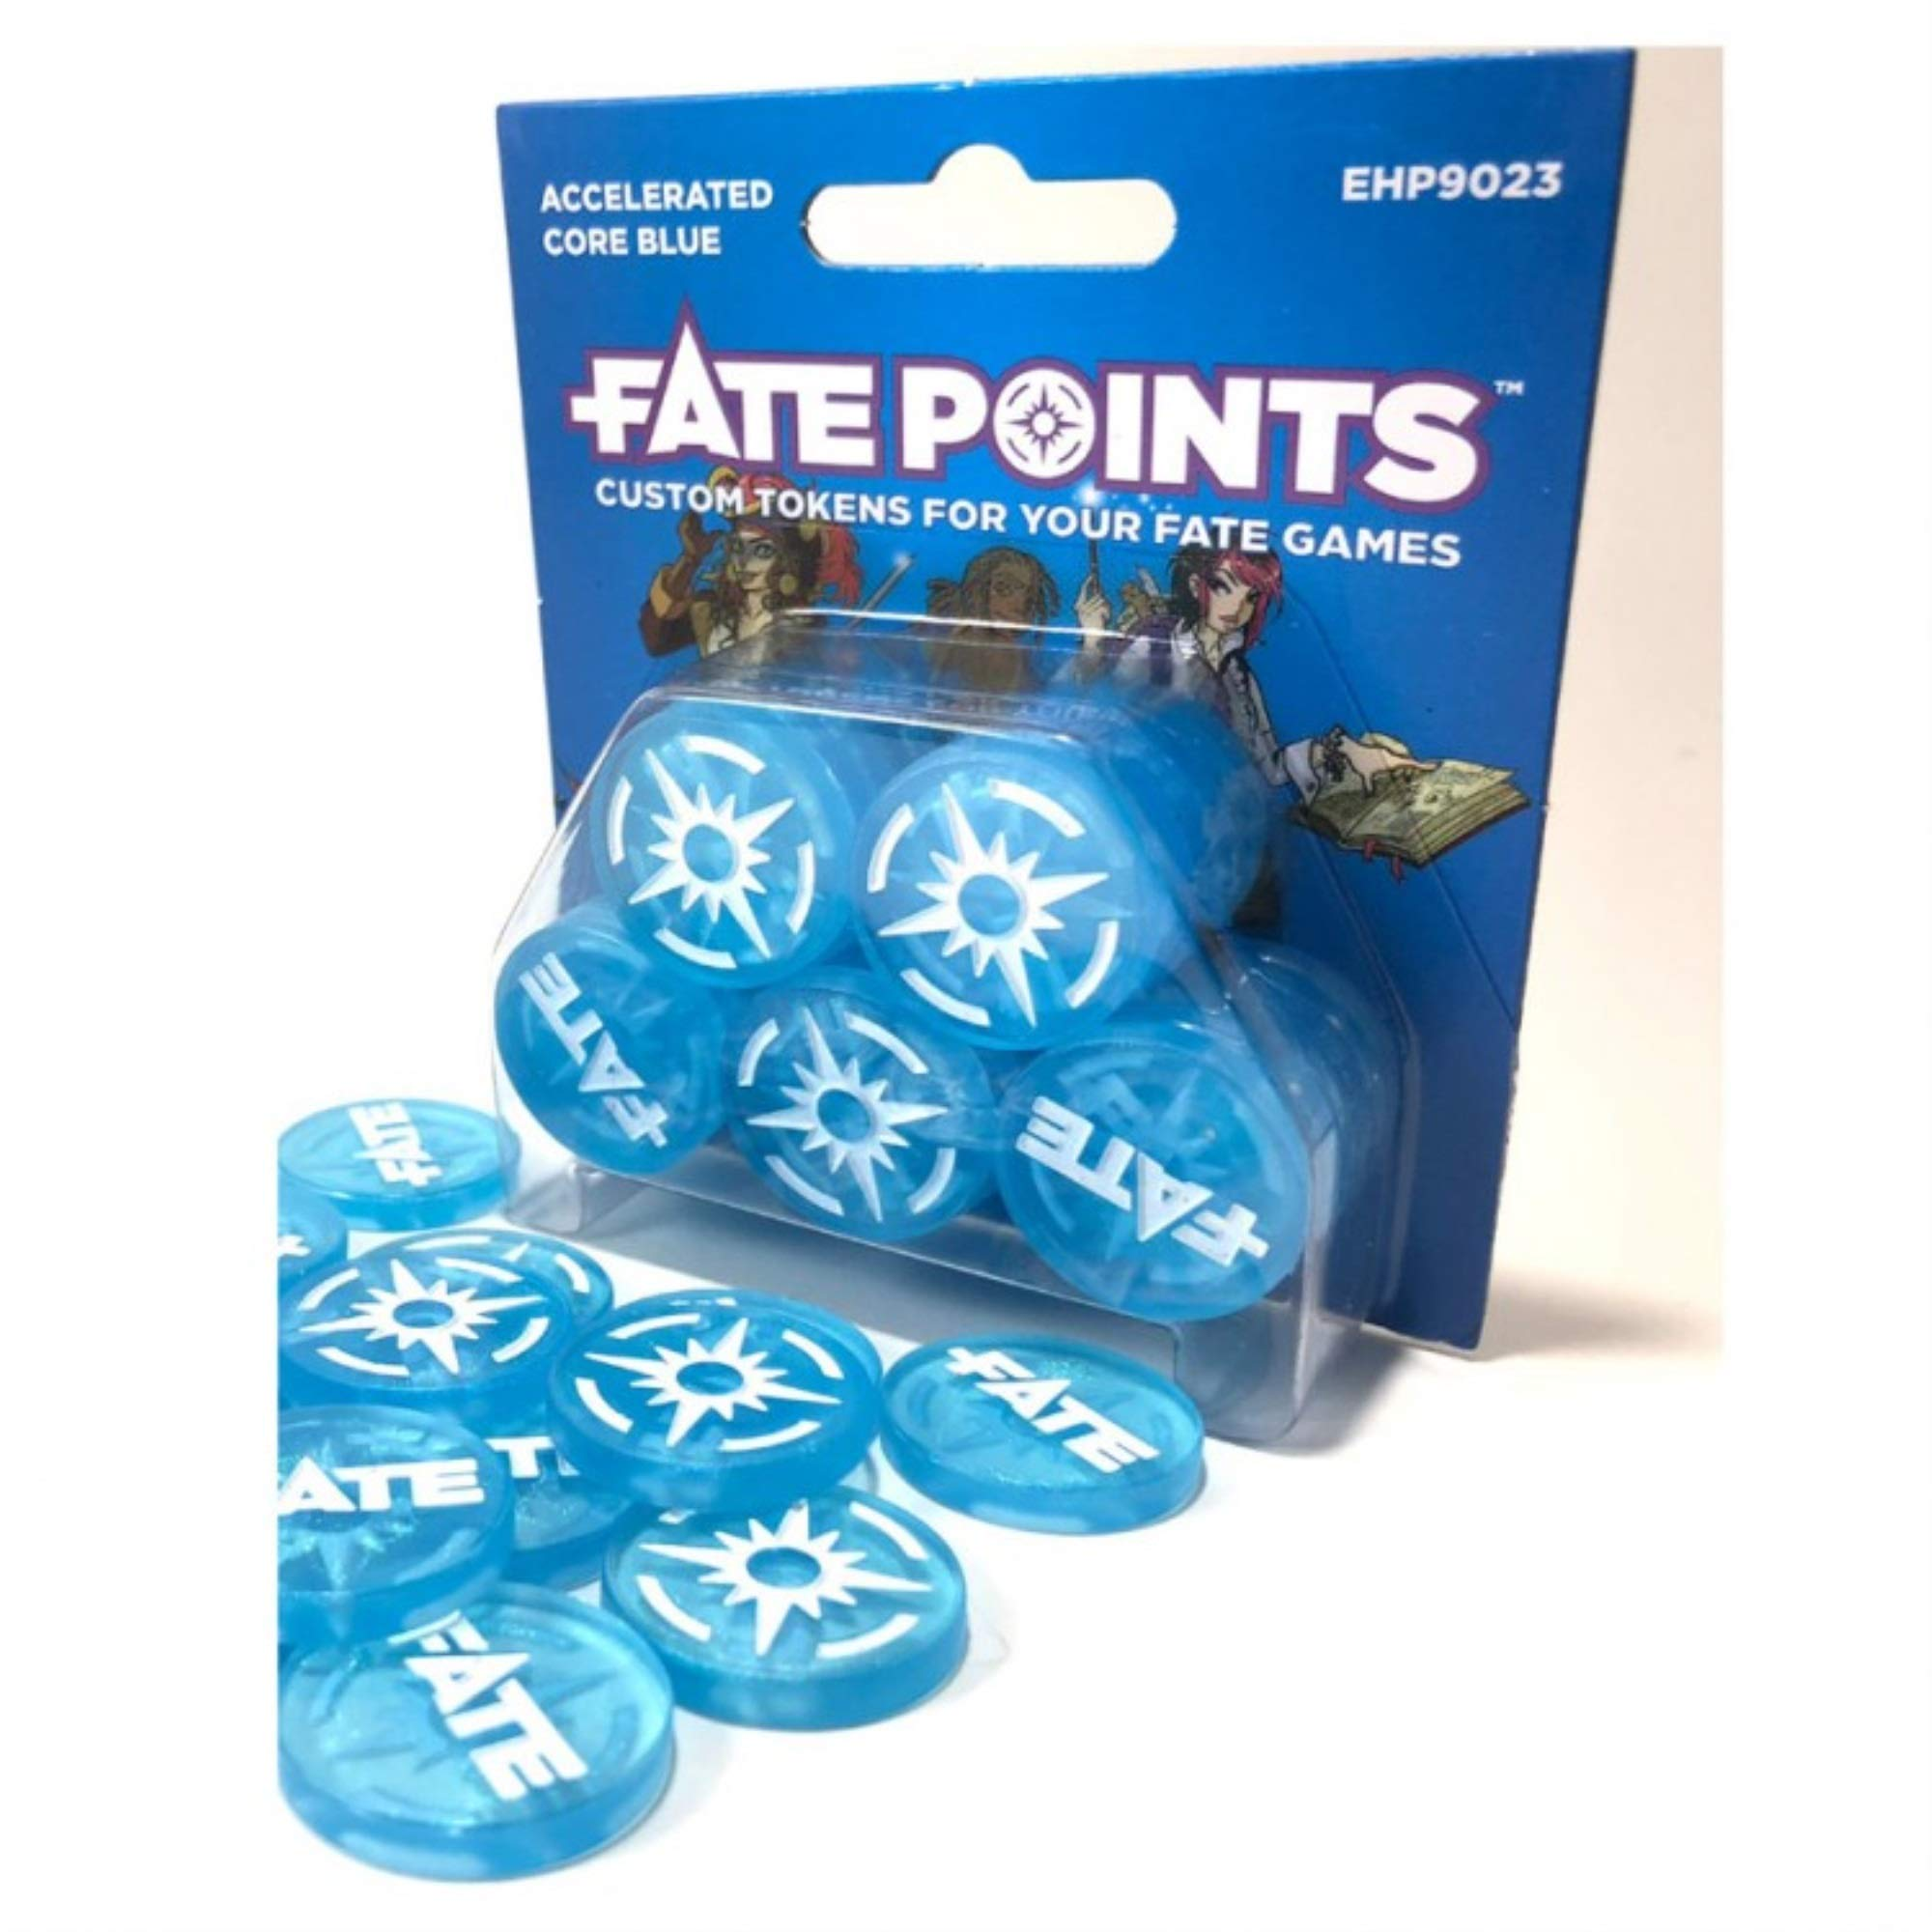 Evil Hat Productions EHP09023 Fate Points: Accelerated Core Blue, Multicoloured